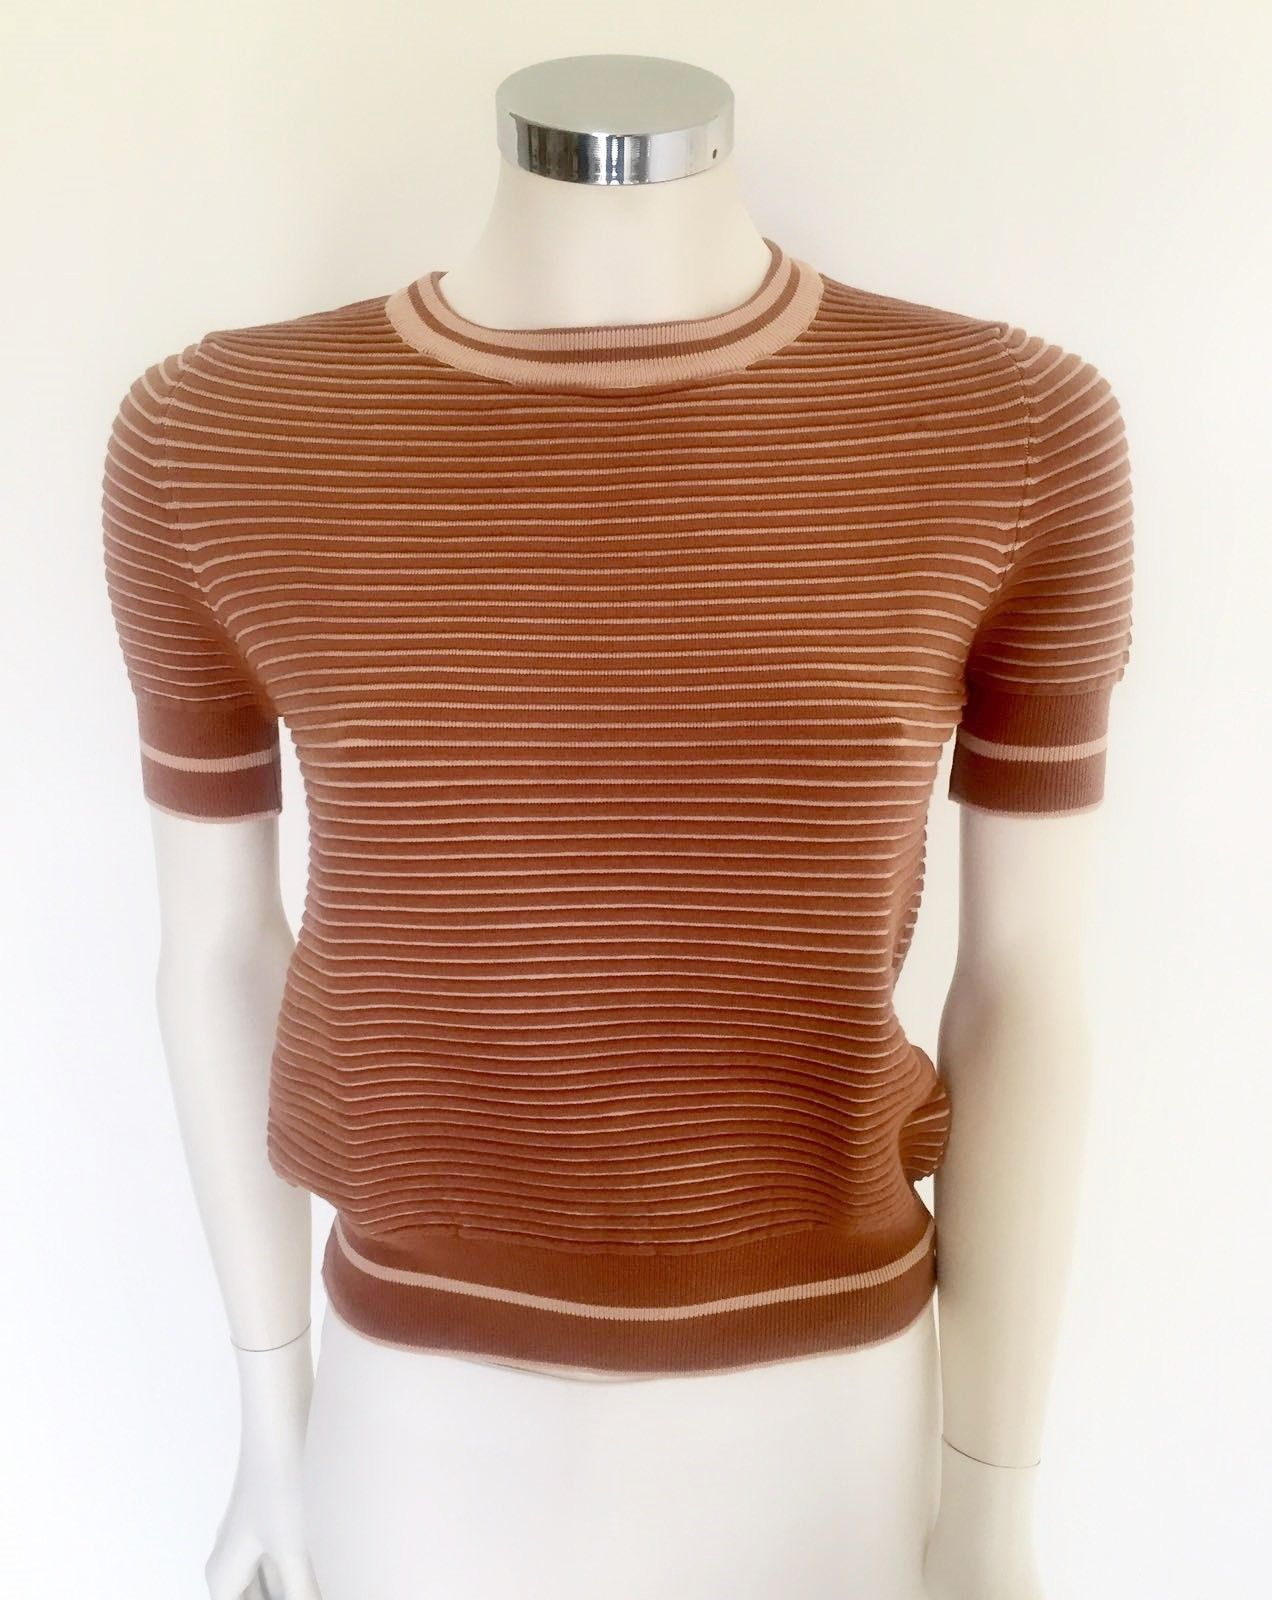 LadyBug Sleeved Two-tone Striped Sweater Cod.2024